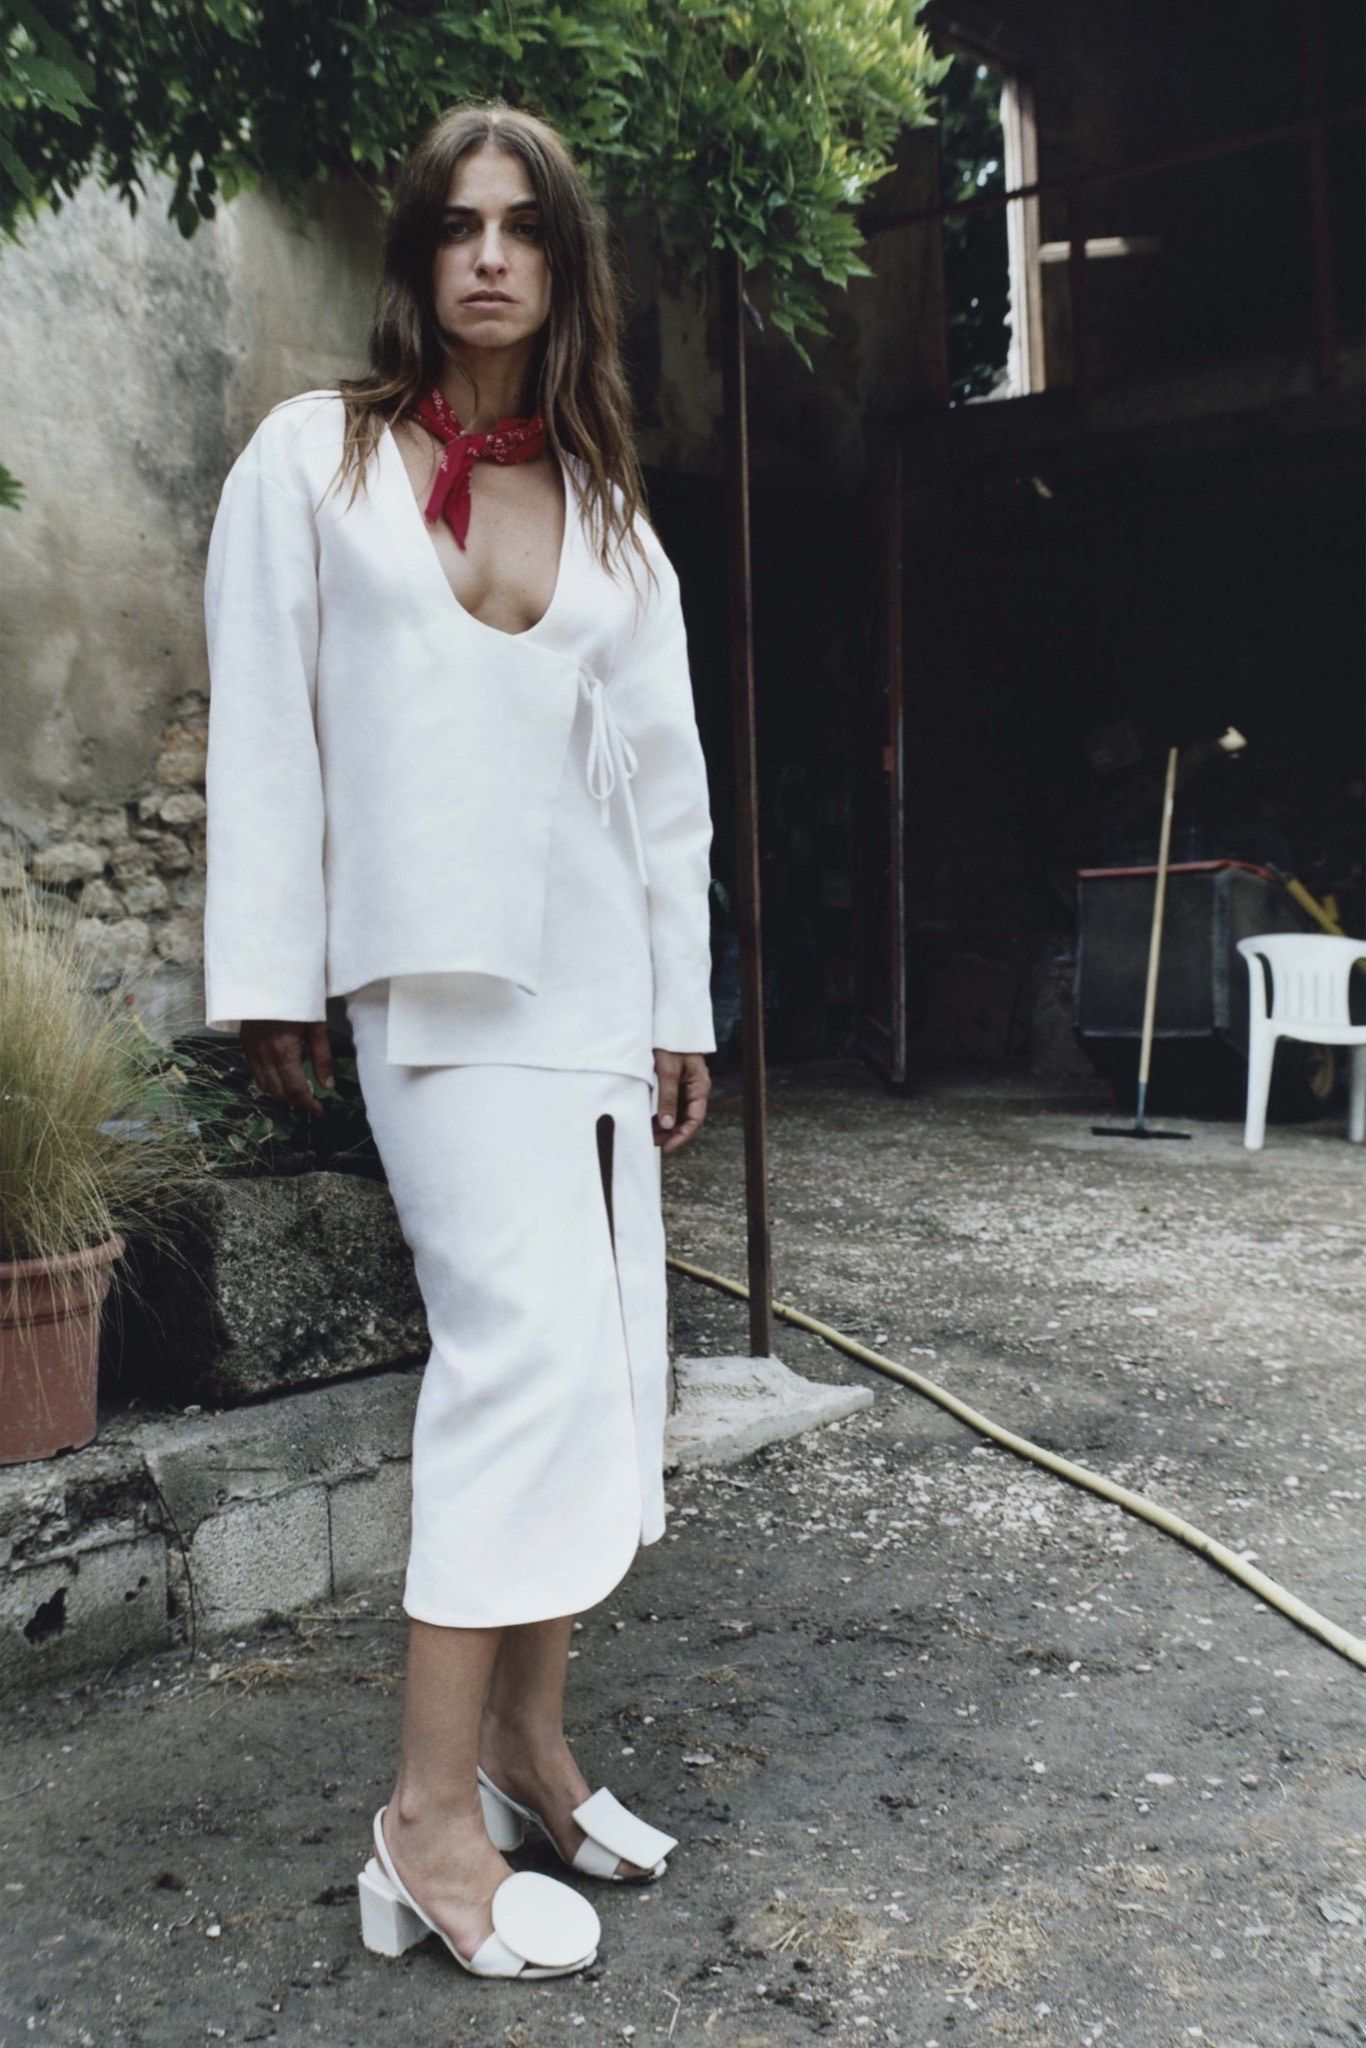 Jacquemus Resort 2016 Fashion Show